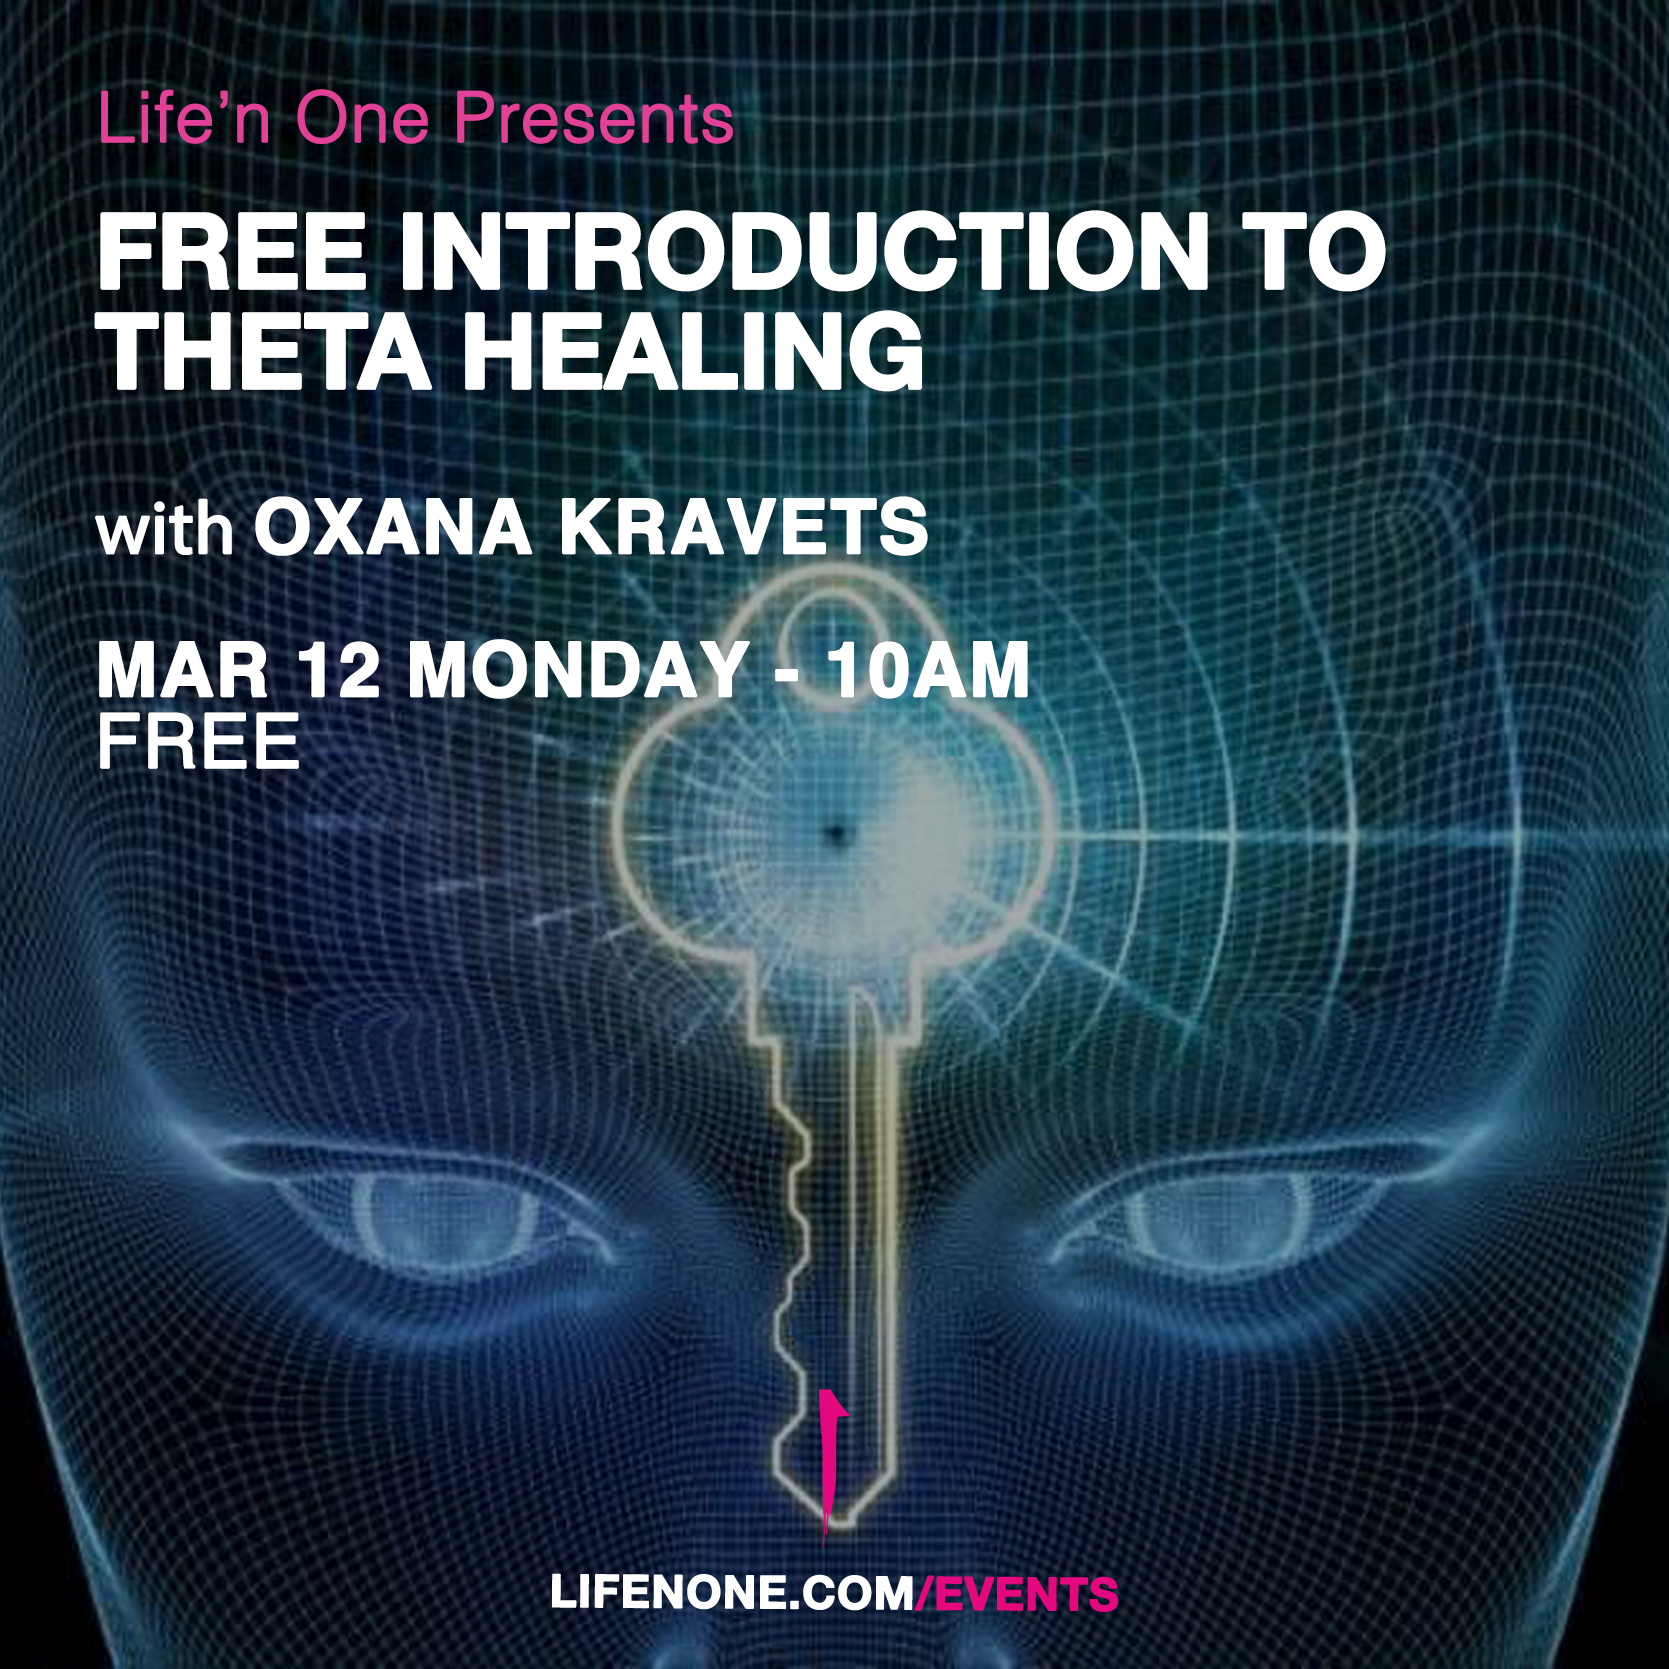 Free Introduction to Theta Healing with Oxana Kravets